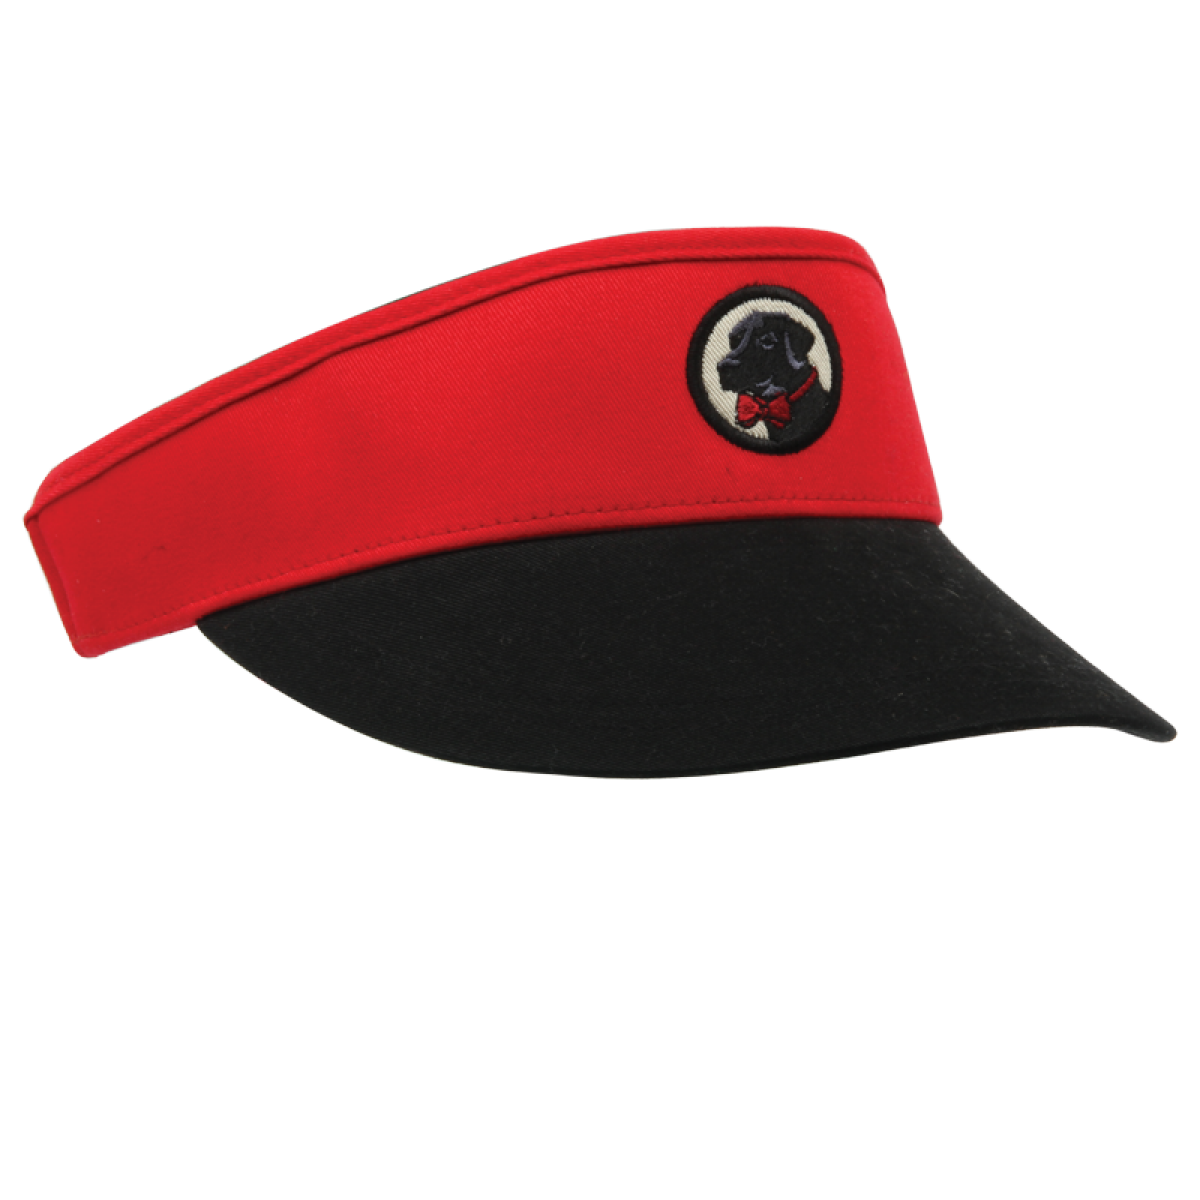 Red and Black Visor